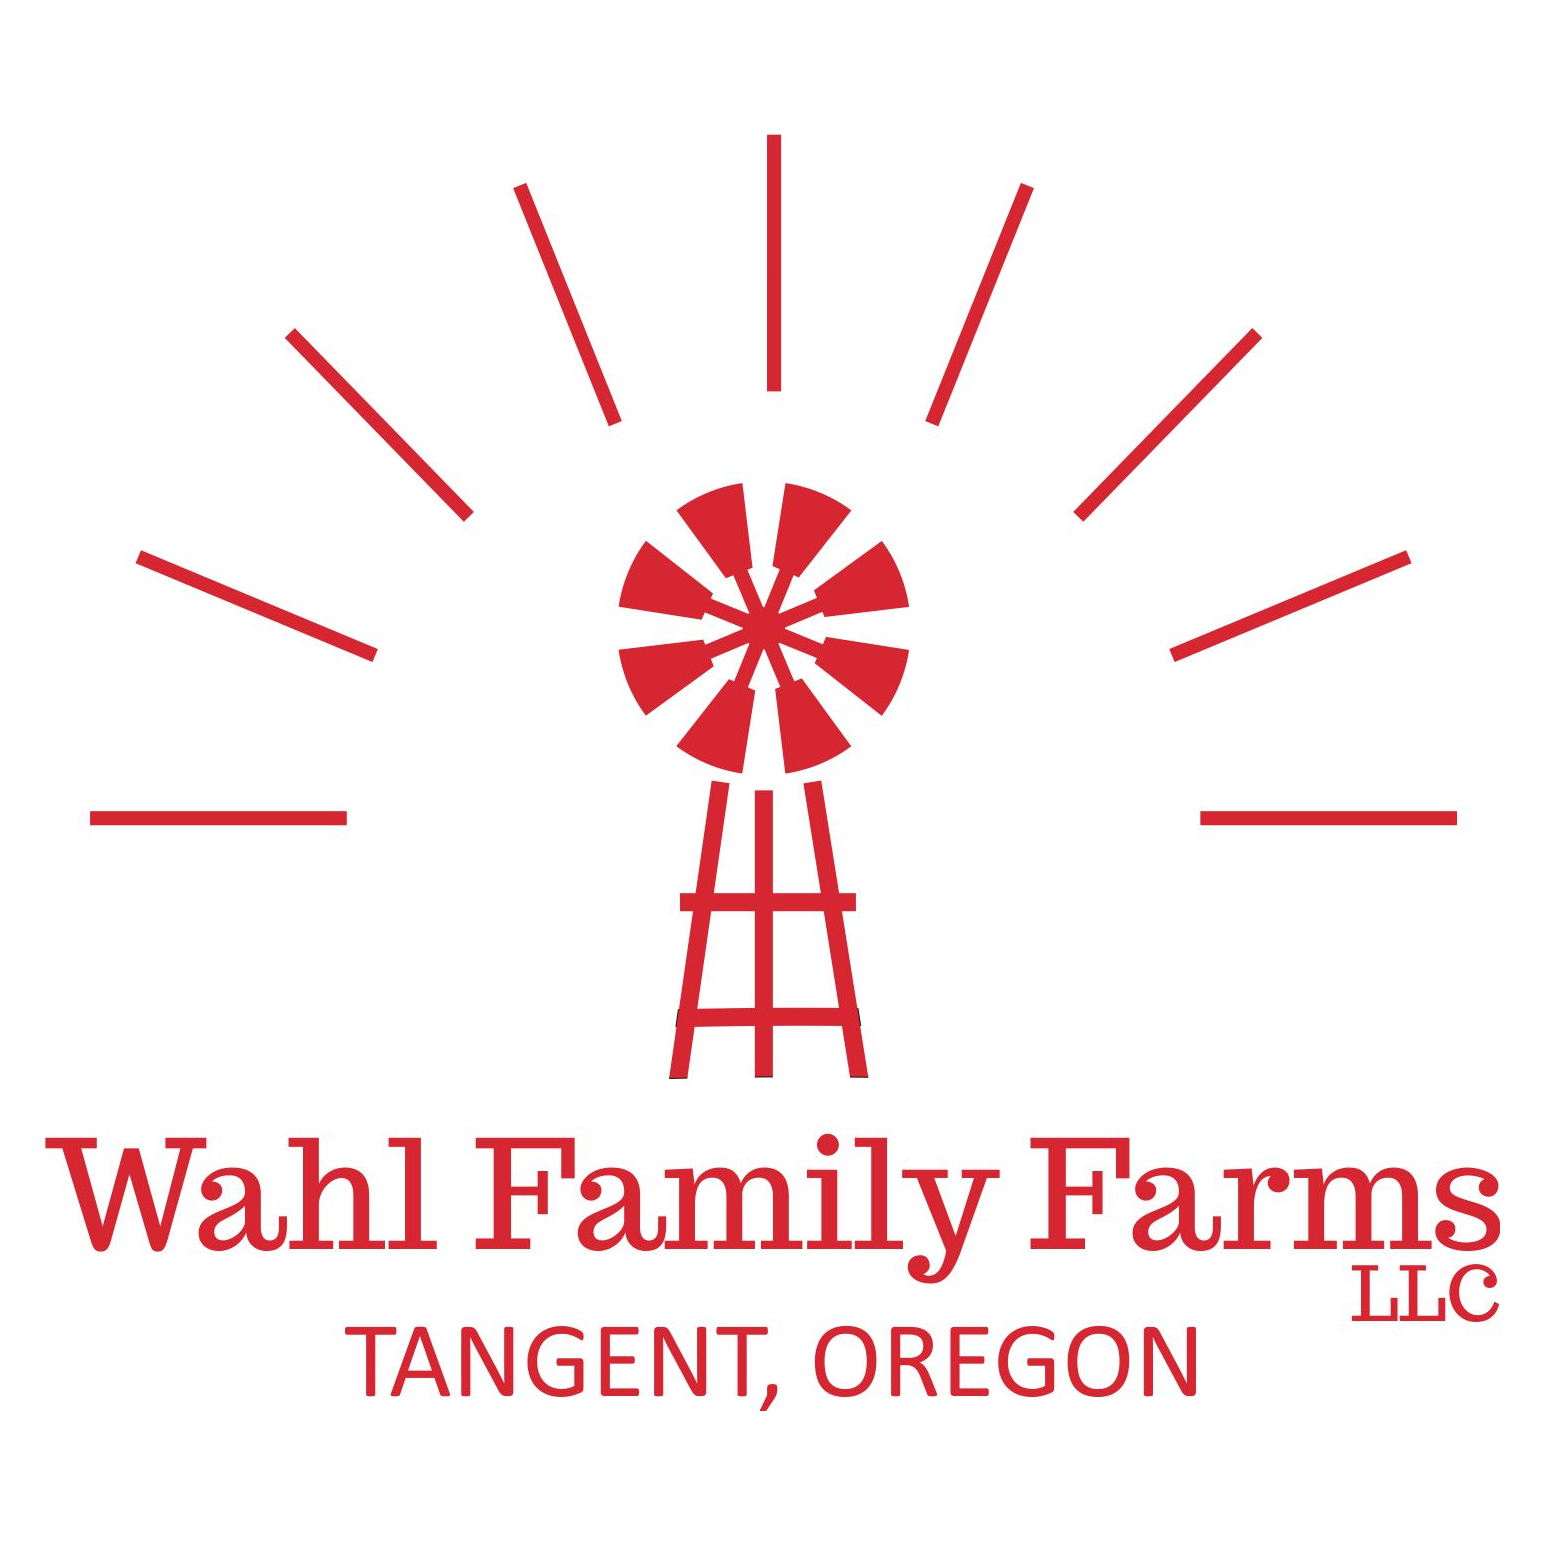 2. Wahl Family Farms